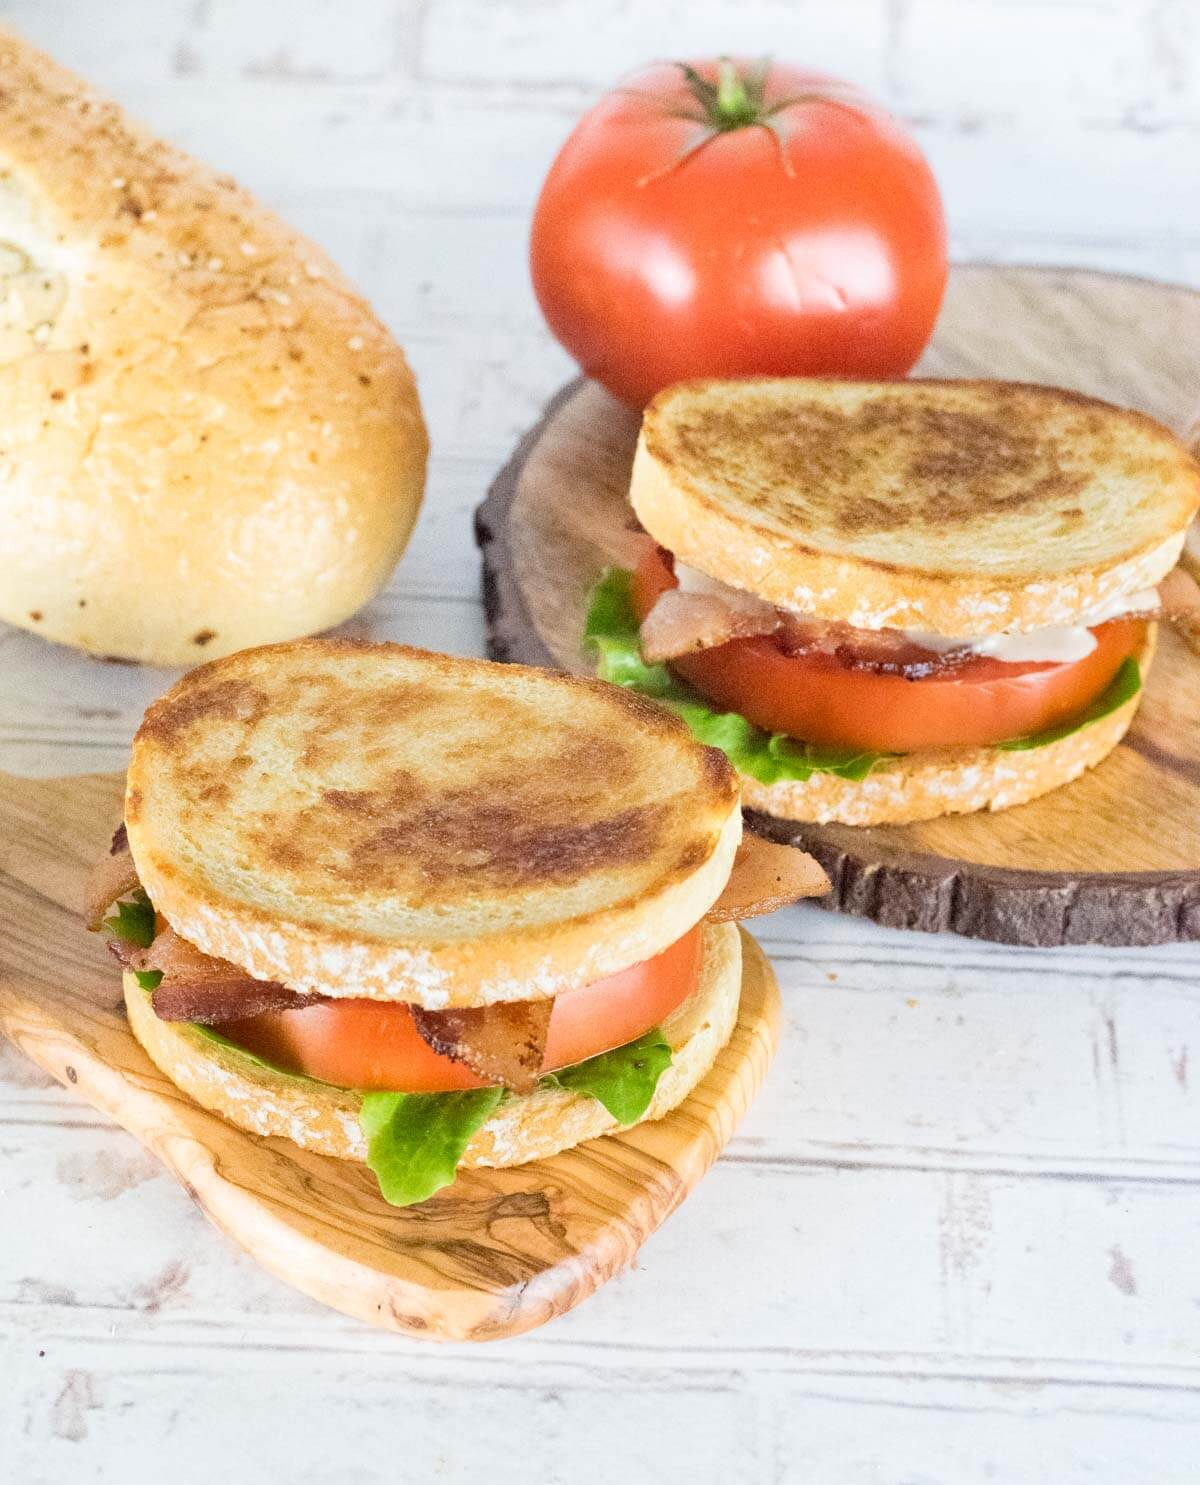 Two Gourmet BLTs with fresh bread